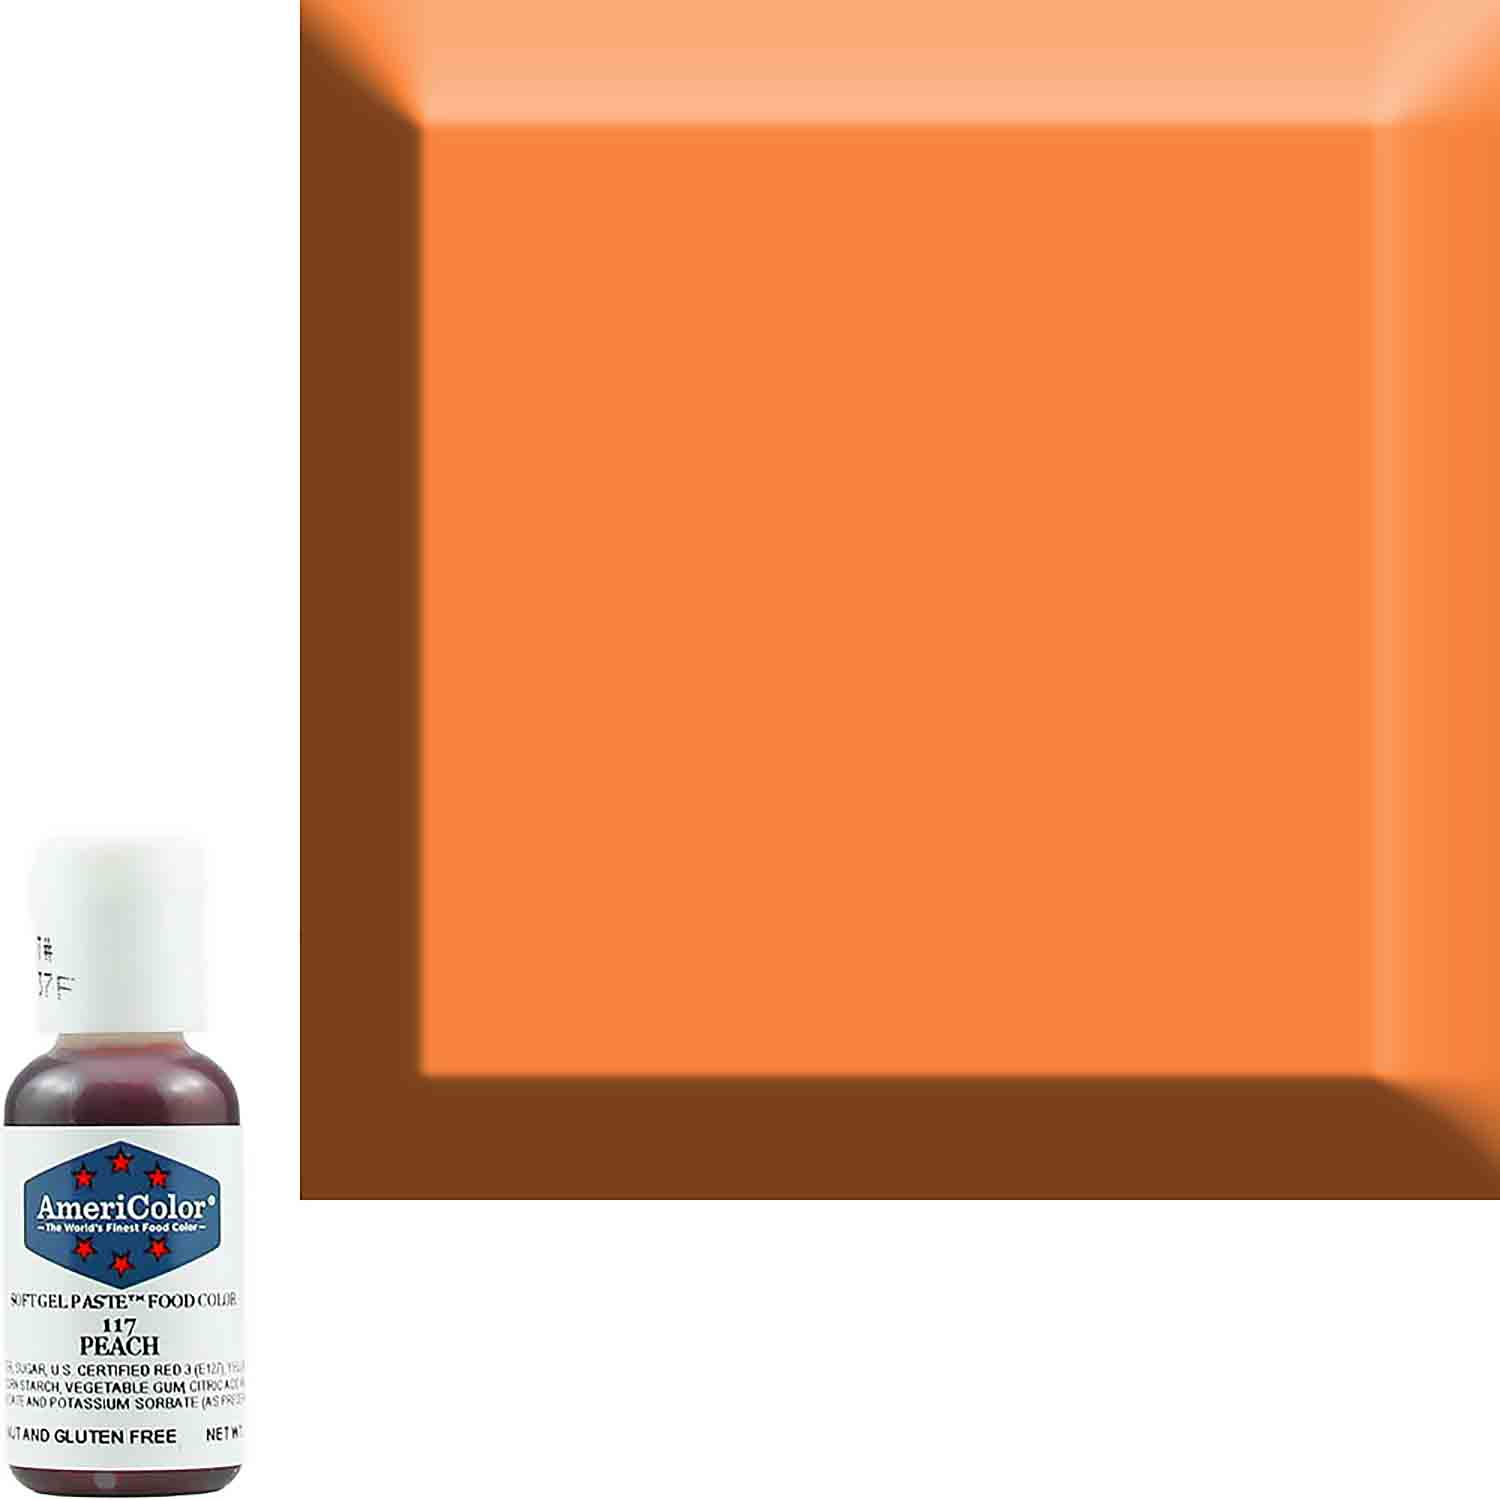 Peach AmeriColor® Soft Gel Paste™ Food Color